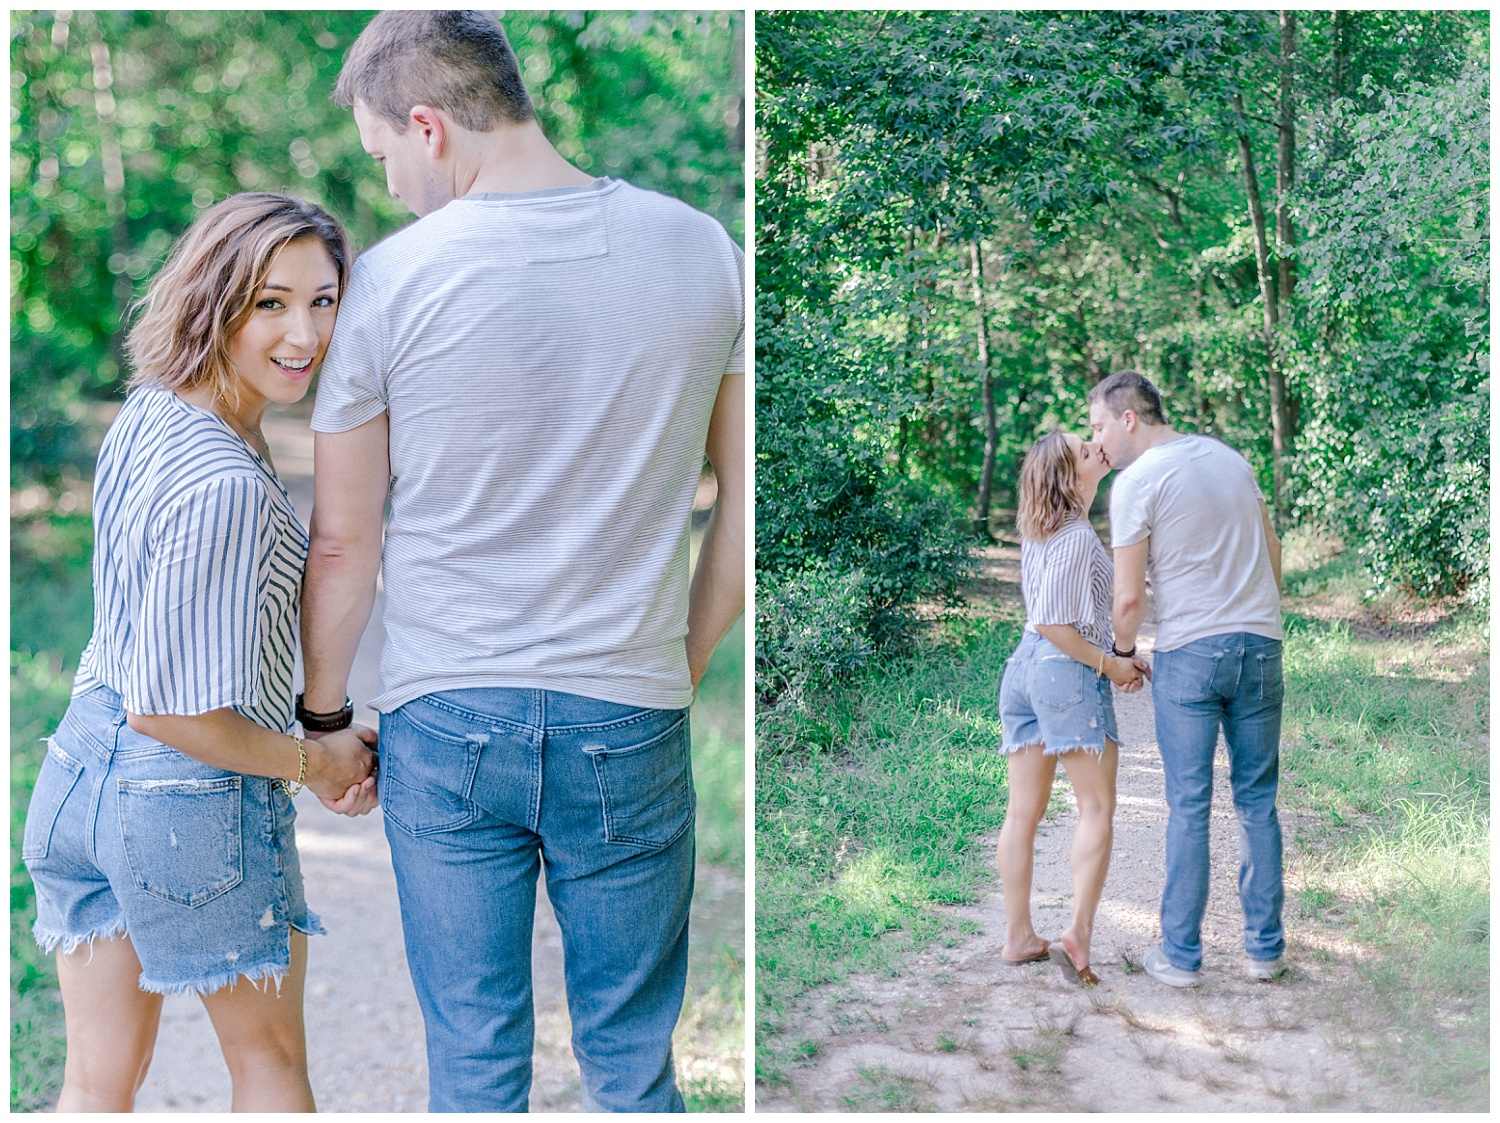 Wooded sunny Summertime engagement session in Odenton Maryland by Pennsylvania based wedding and lifestyle photographer Lytle photography_0015.jpg